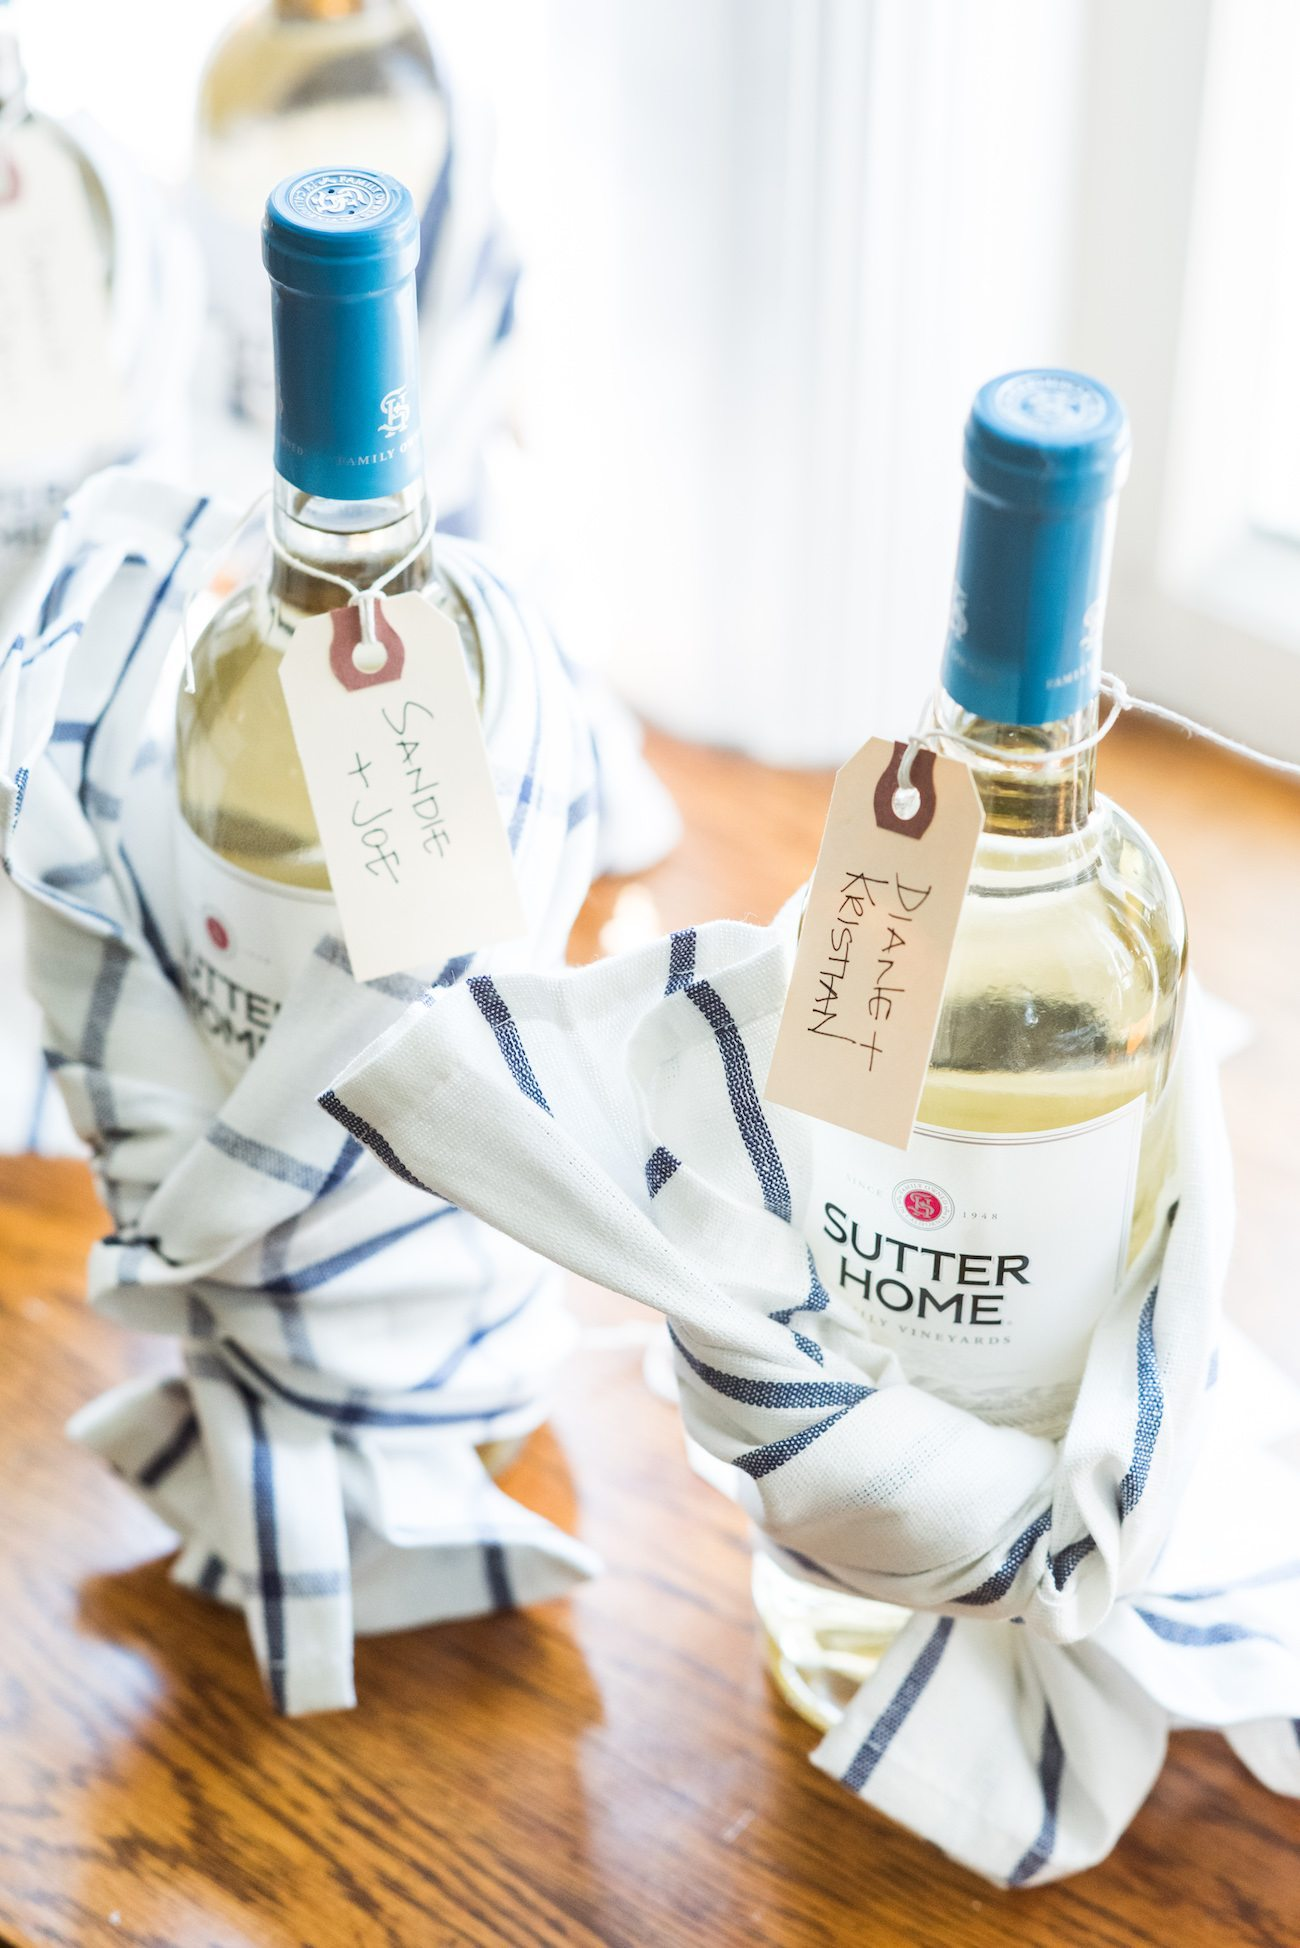 Sutter Home Wines + The Sweetest Occasion hosted an amazing backyard party | Entertaining tips, party recipes, party appetizers, entertaining ideas and more from @cydconverse